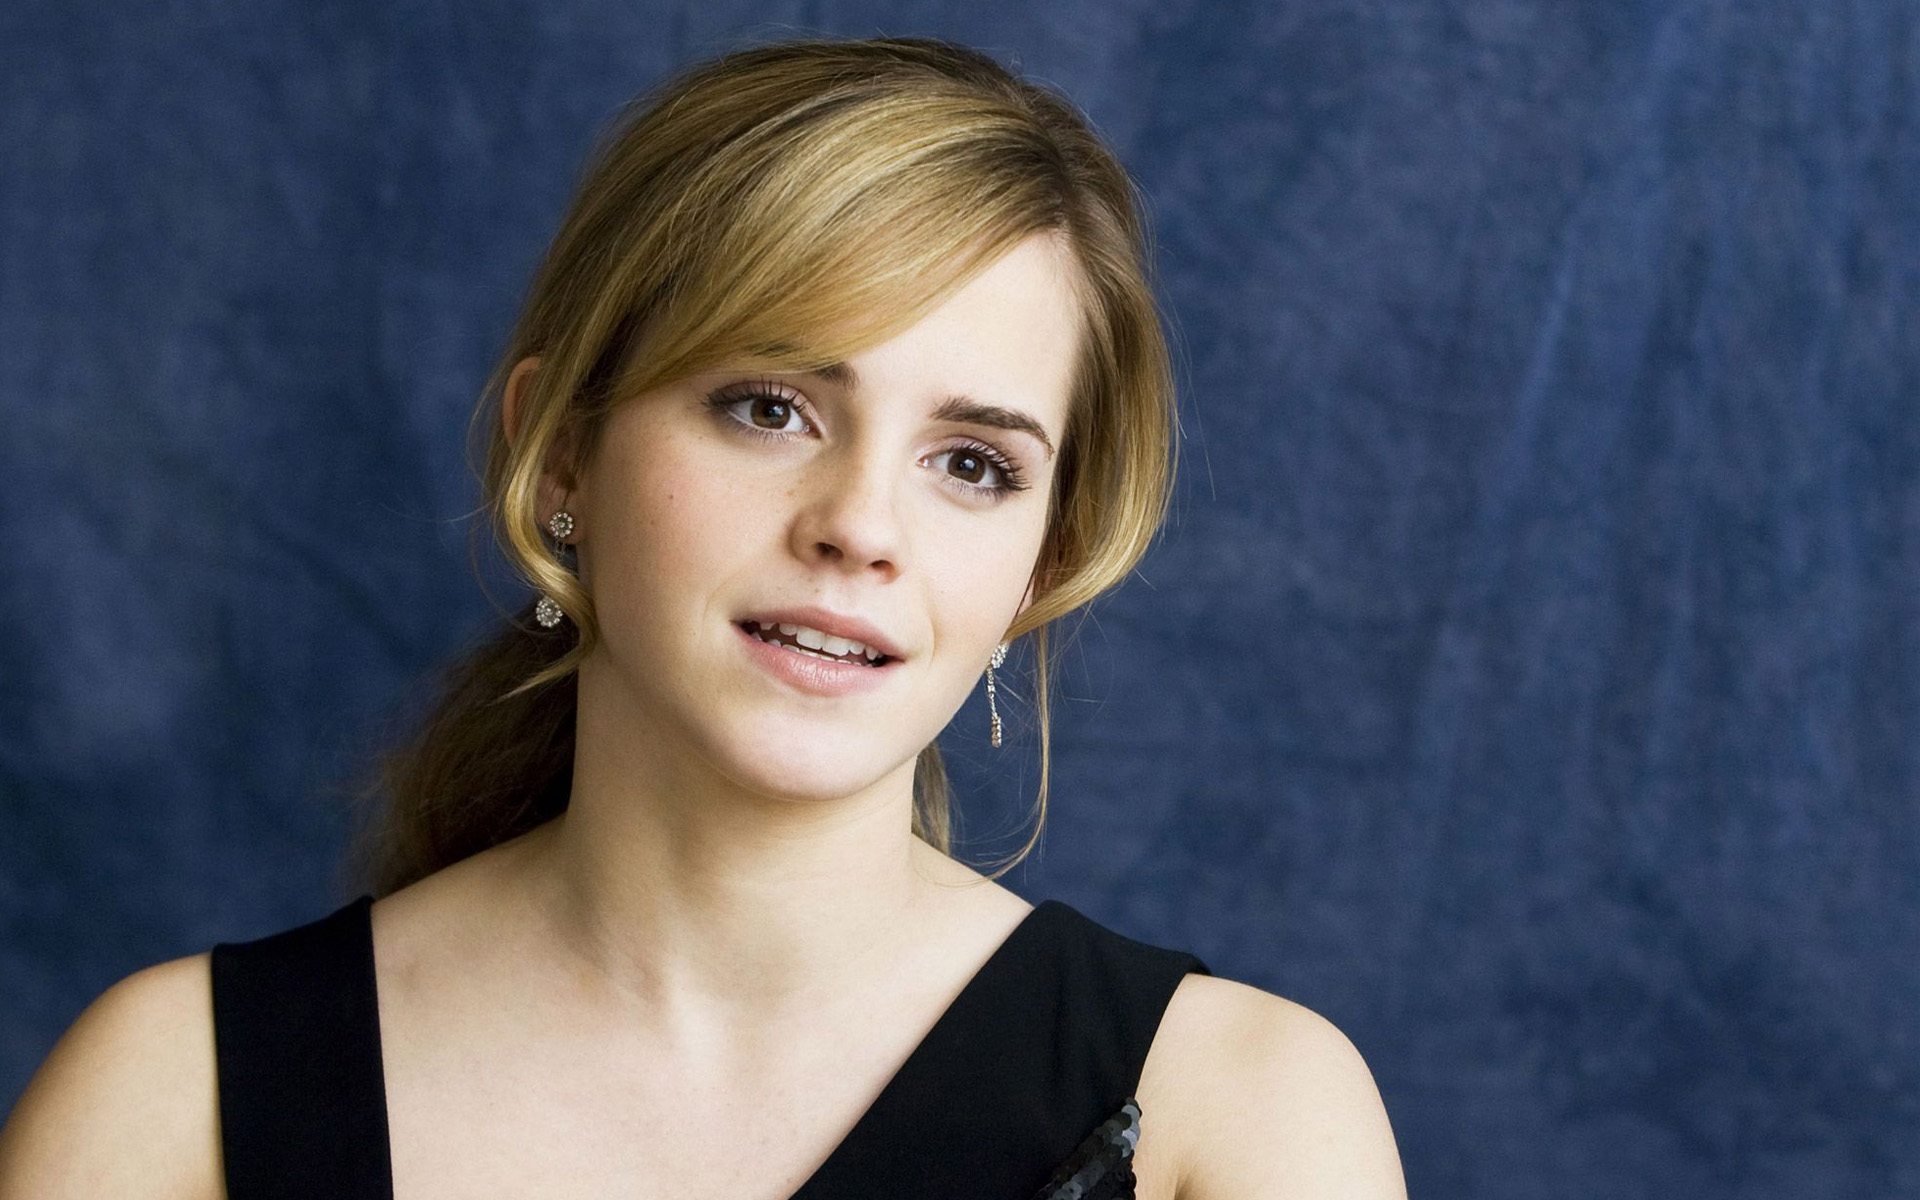 Emma Watson at Tale of Despereaux Wide Screen 804.47 Kb